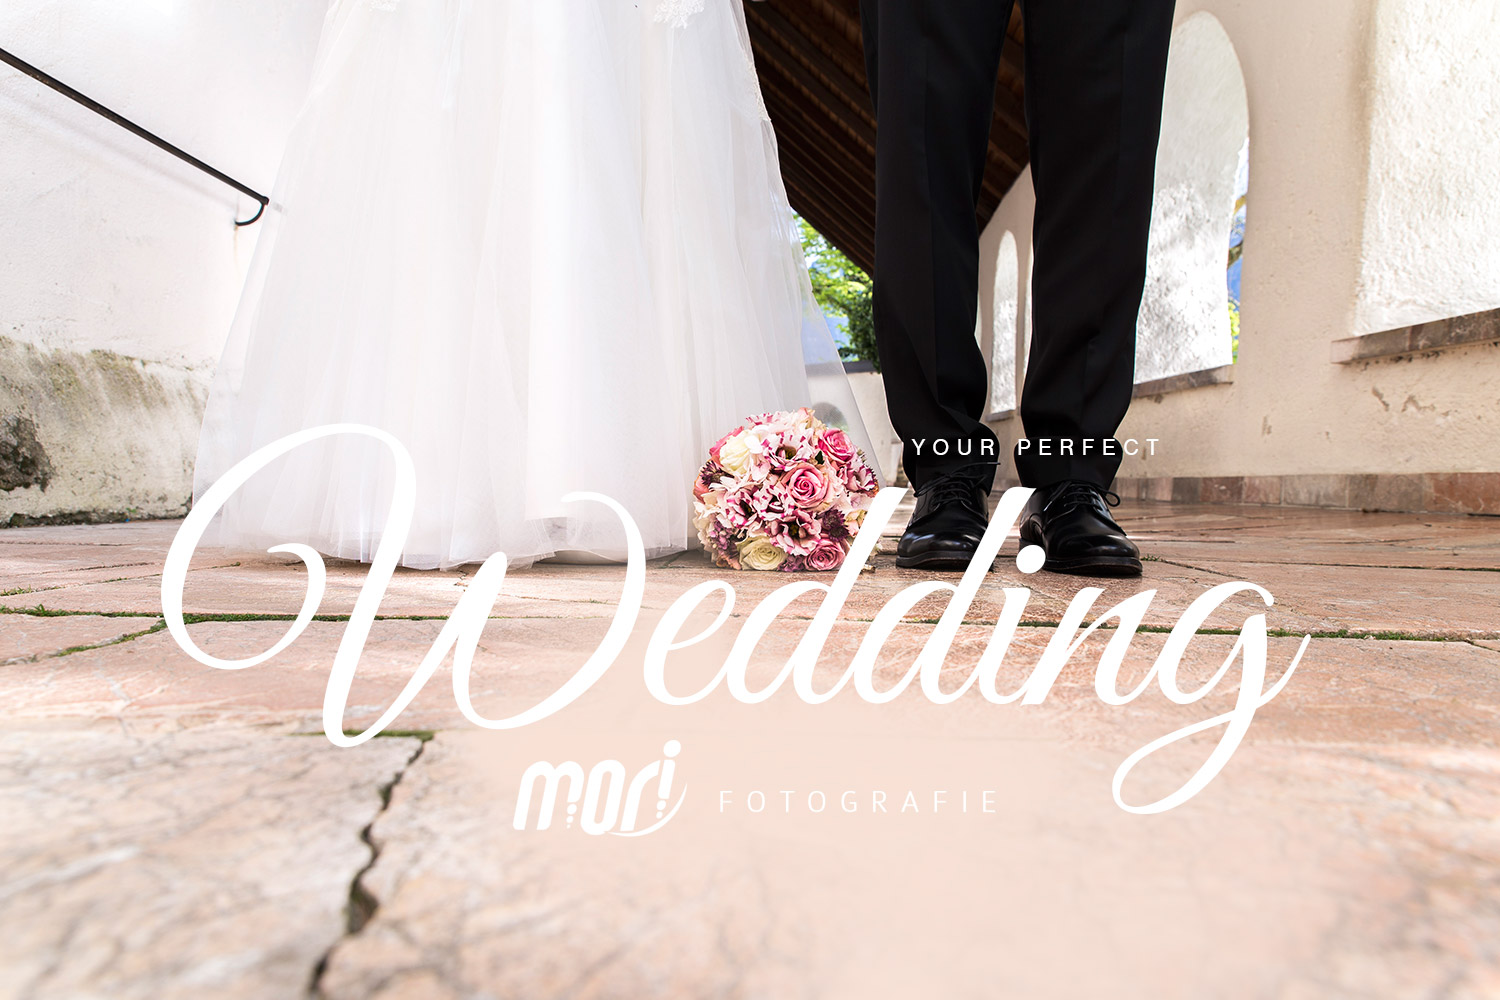 Your perfect wedding - by MORI Fotografie